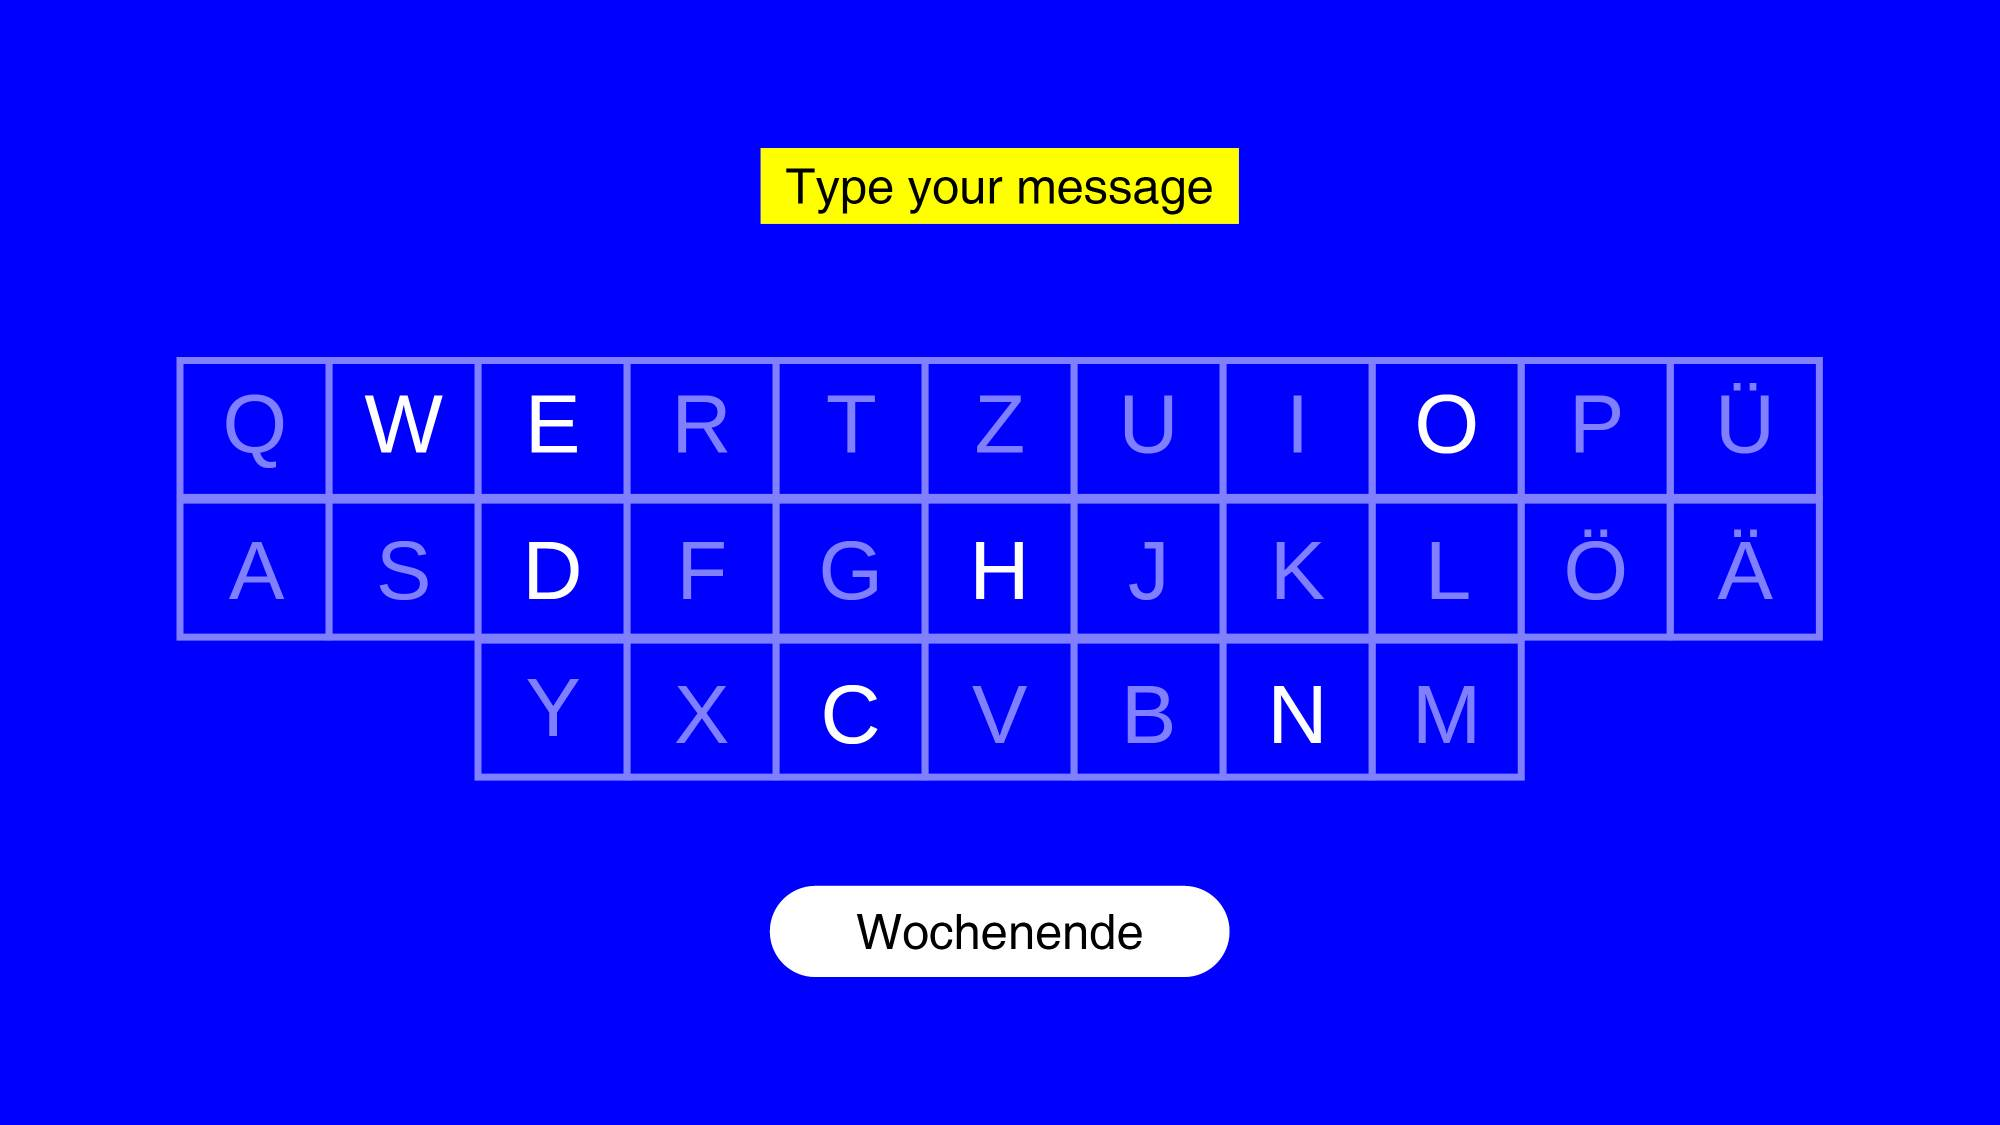 Pia Wolter Glype Texting just by typing. Too slow.